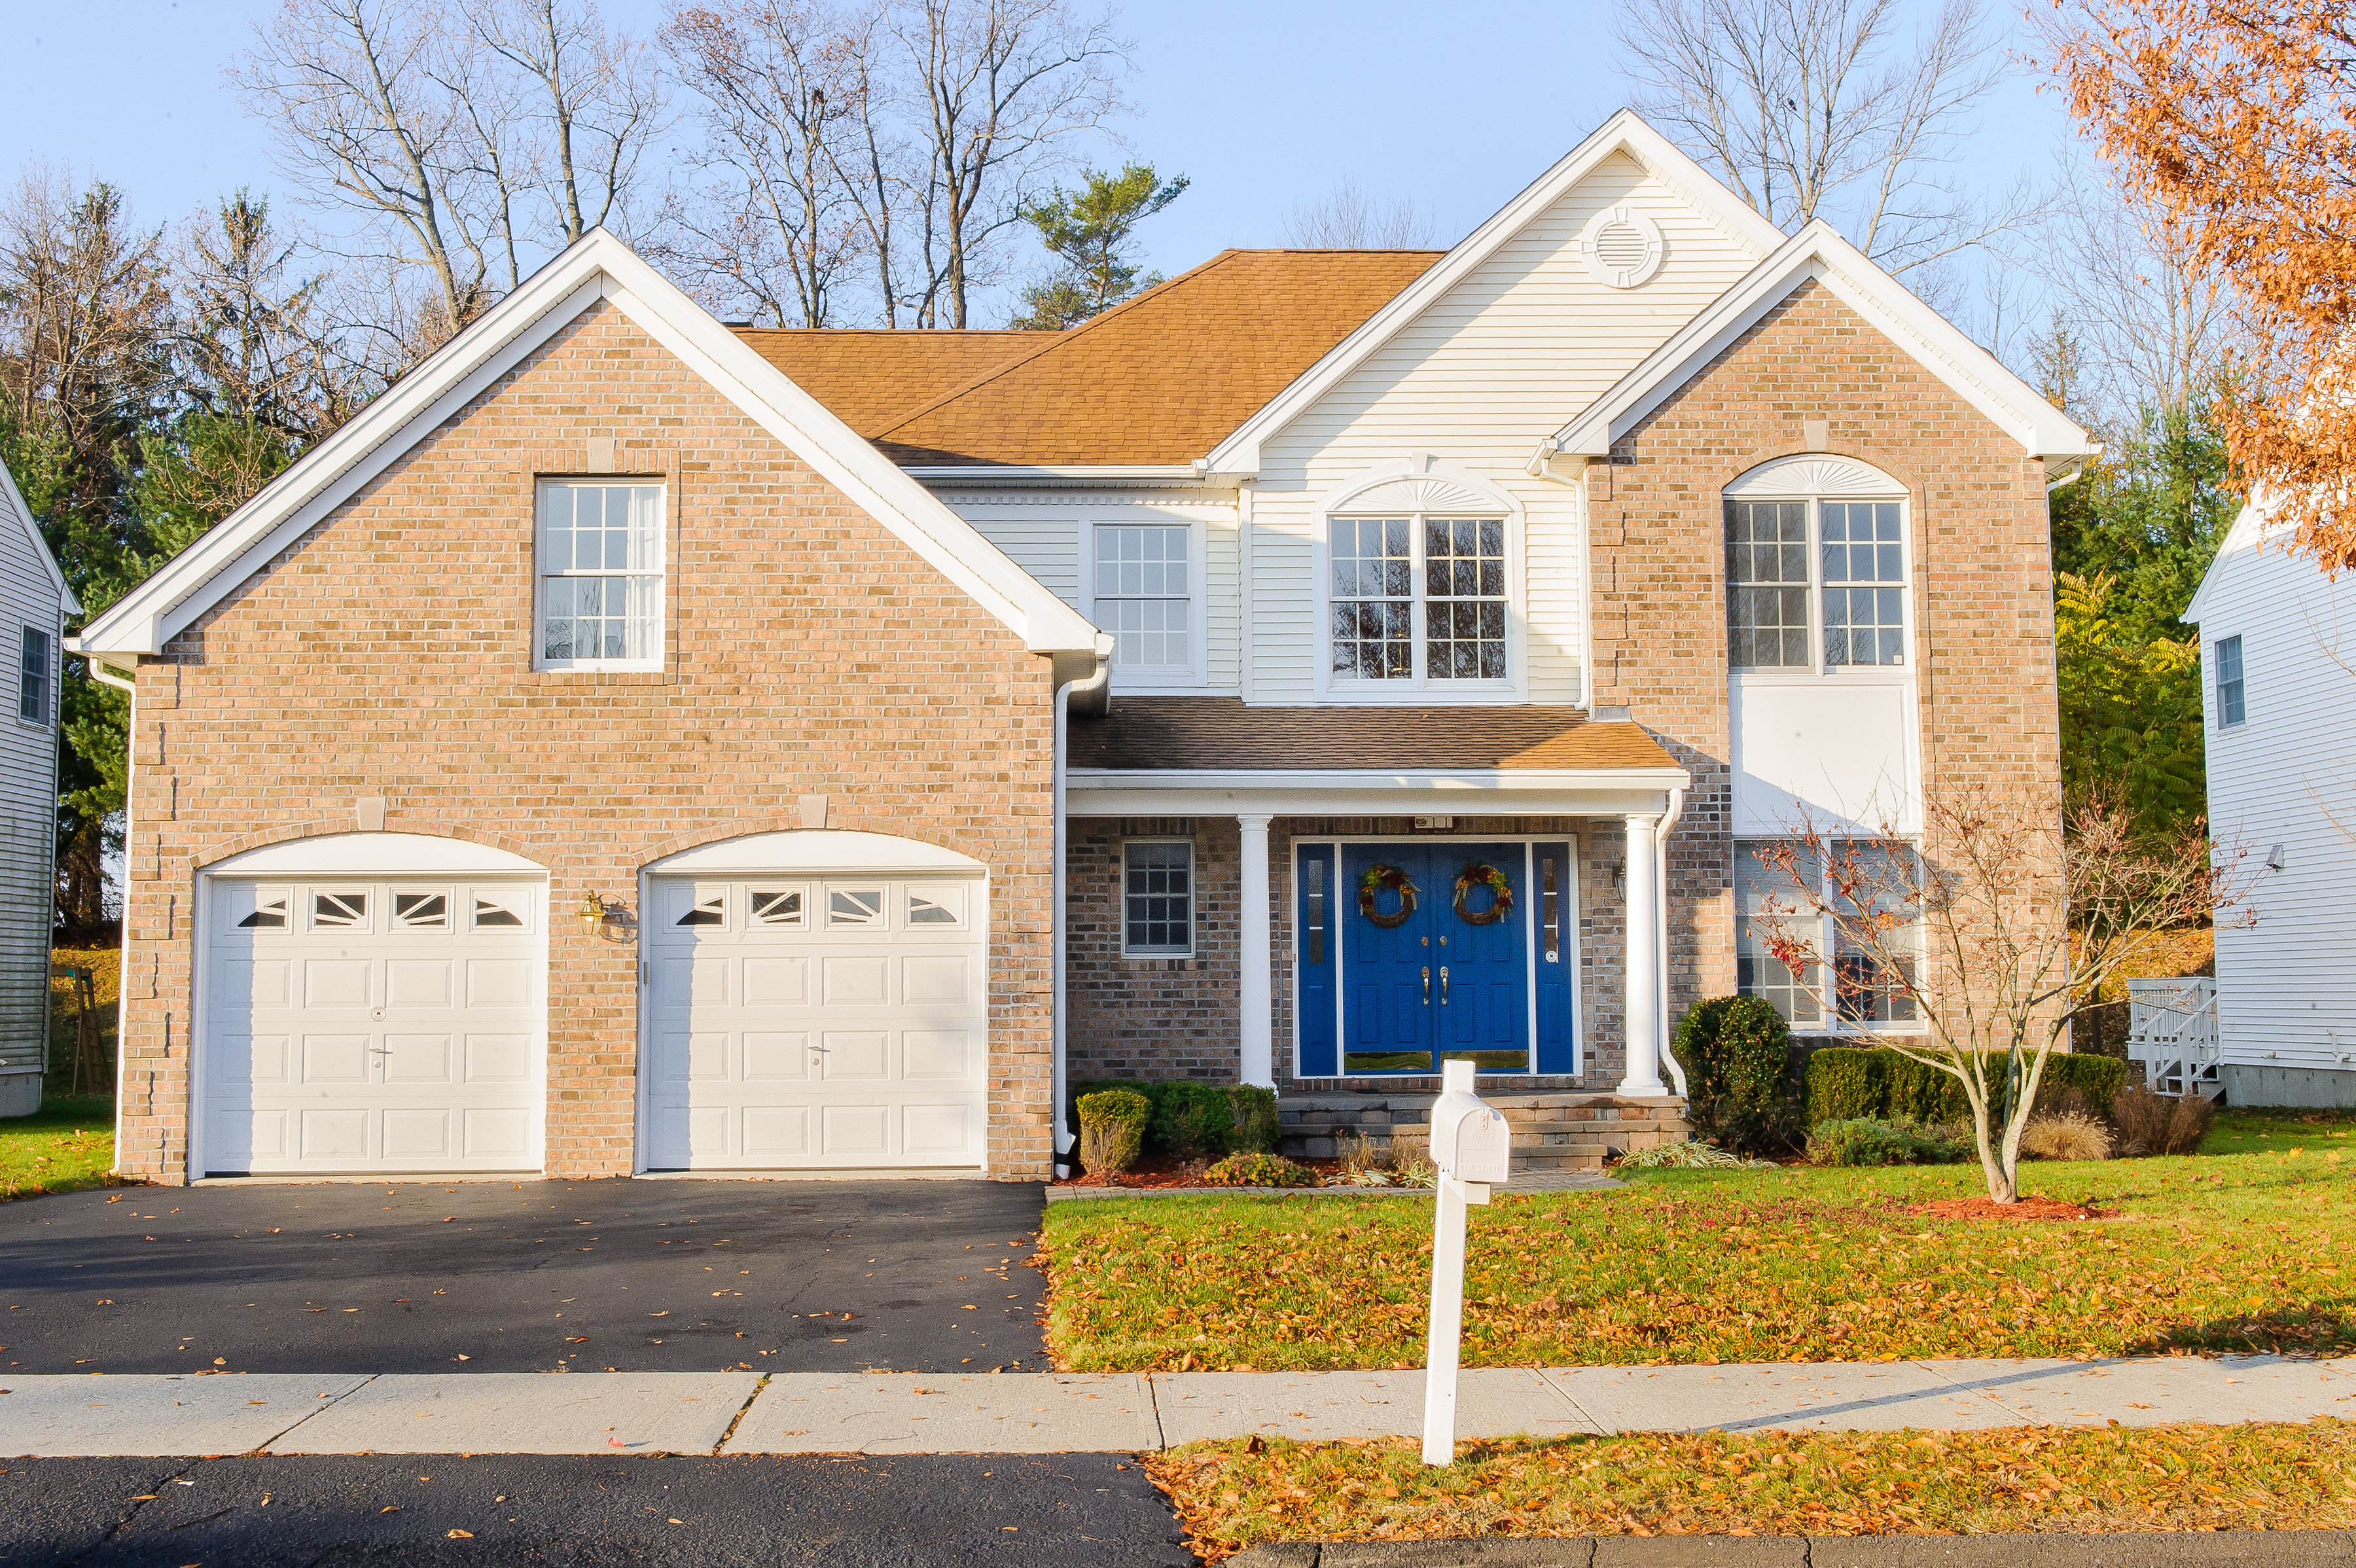 Single Family Home for Sale at Beautifully Maintained Colonial 11 Ashley Court Danbury, Connecticut 06810 United States